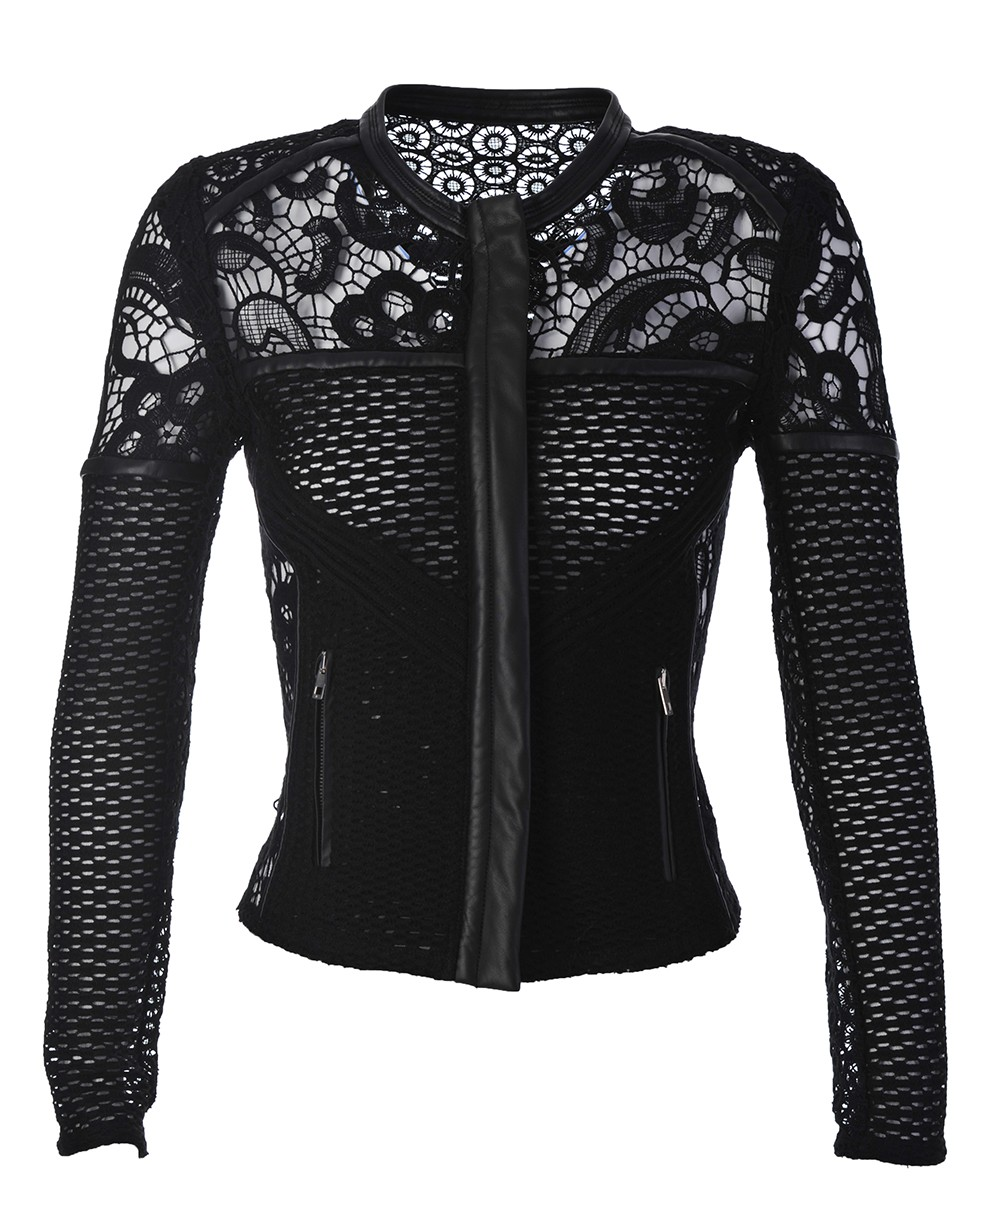 archivesnapug.cf: lace jacket black. Sexy lace jacket. Make you more stylish and charming. Belle Poque Women's Lace Shrug Cardigan Half Sleeve Open Front Crochet Bolero Jacket. by Belle Poque. $ - $ $ 13 $ 18 99 Prime. FREE Shipping on eligible orders. Some sizes/colors are Prime eligible.